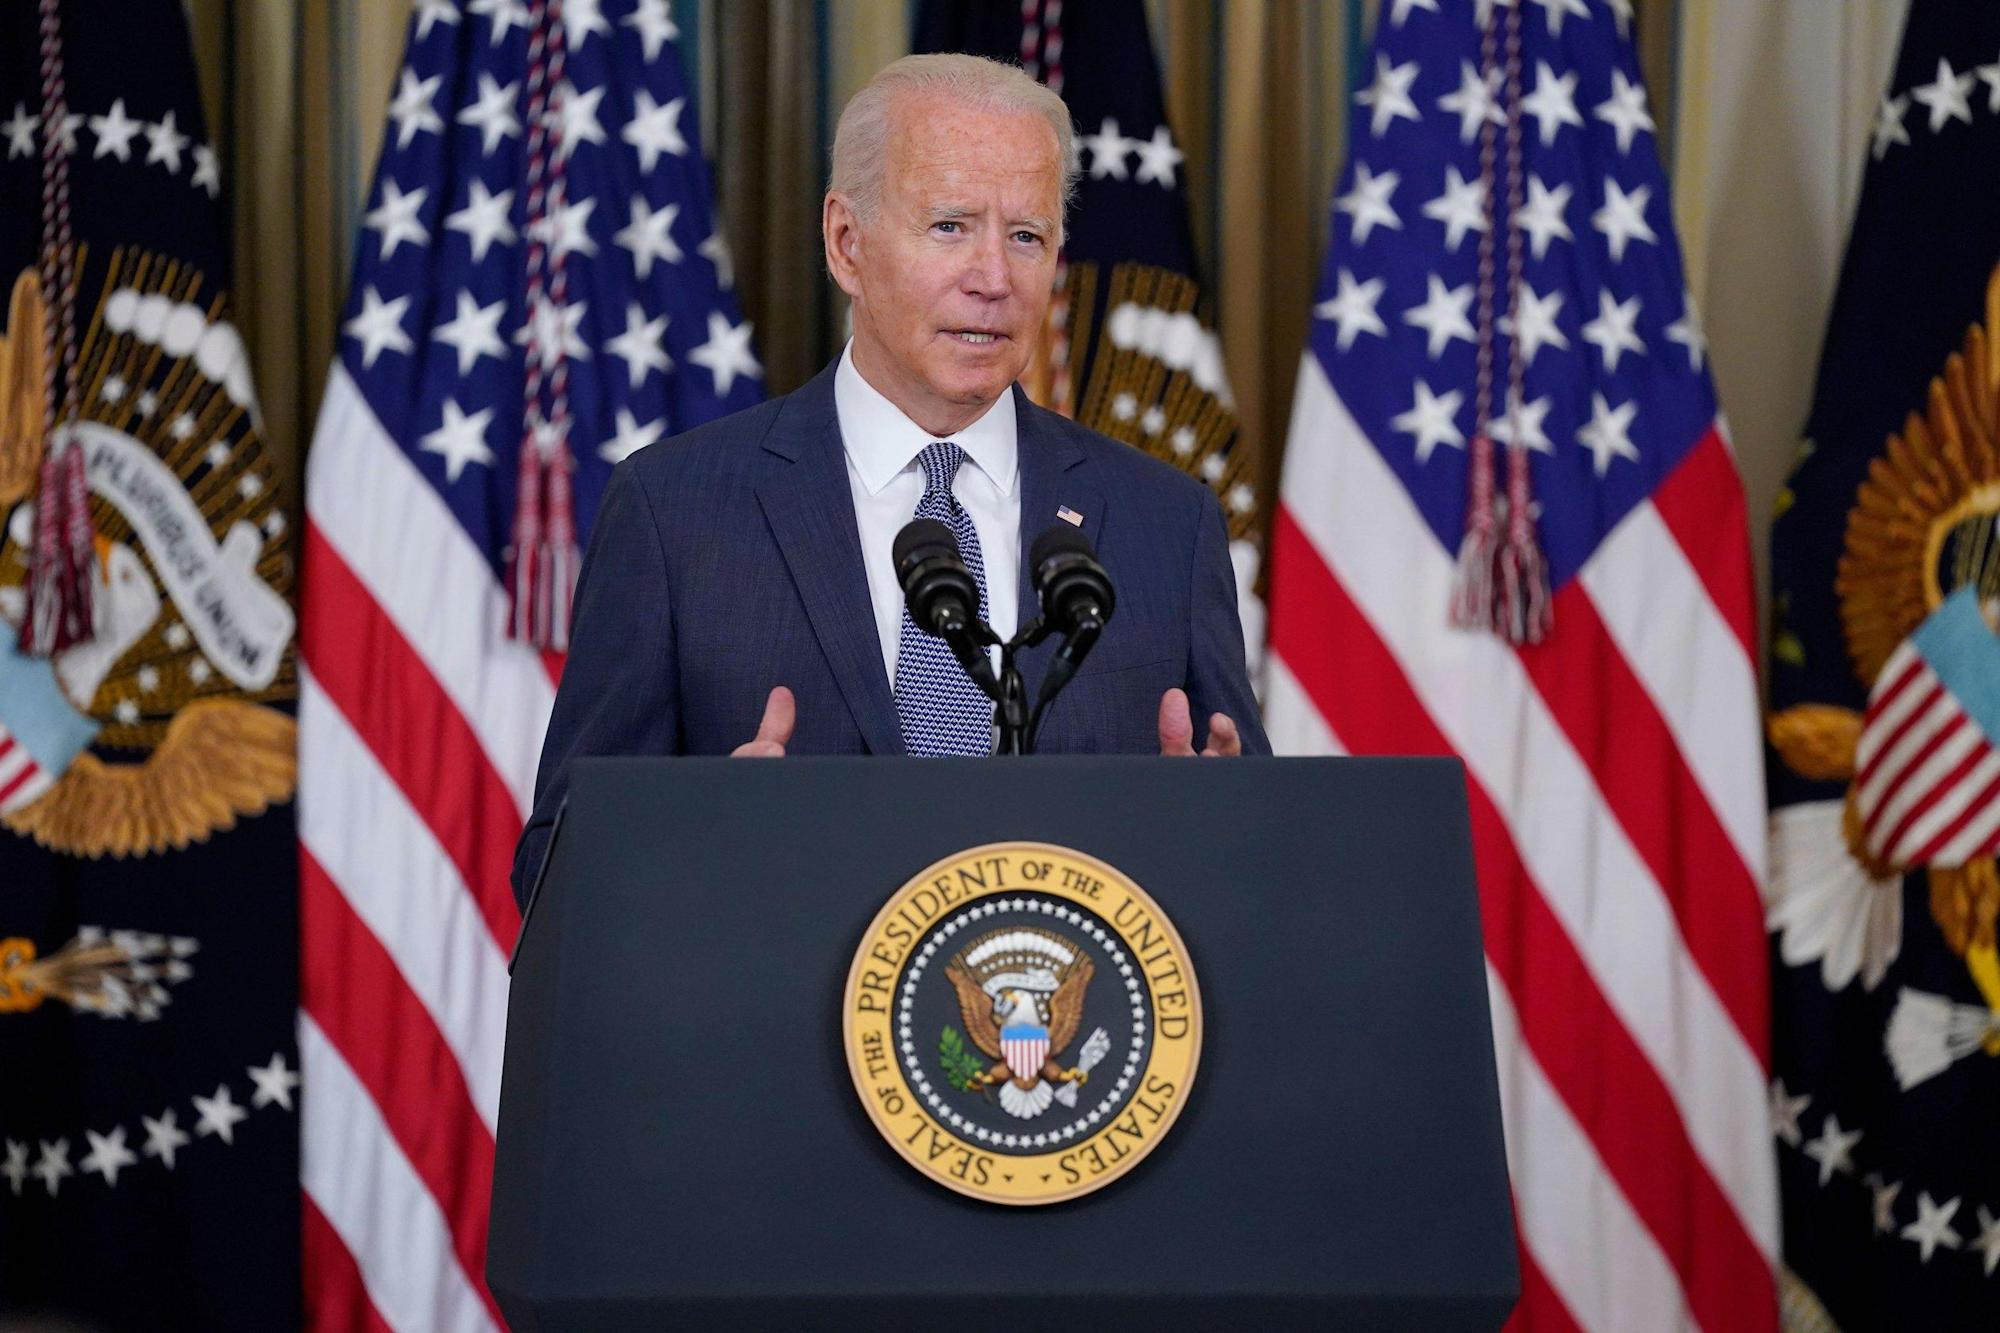 President Biden's New Executive Order Could Save You Money on Airfare, Medications and More